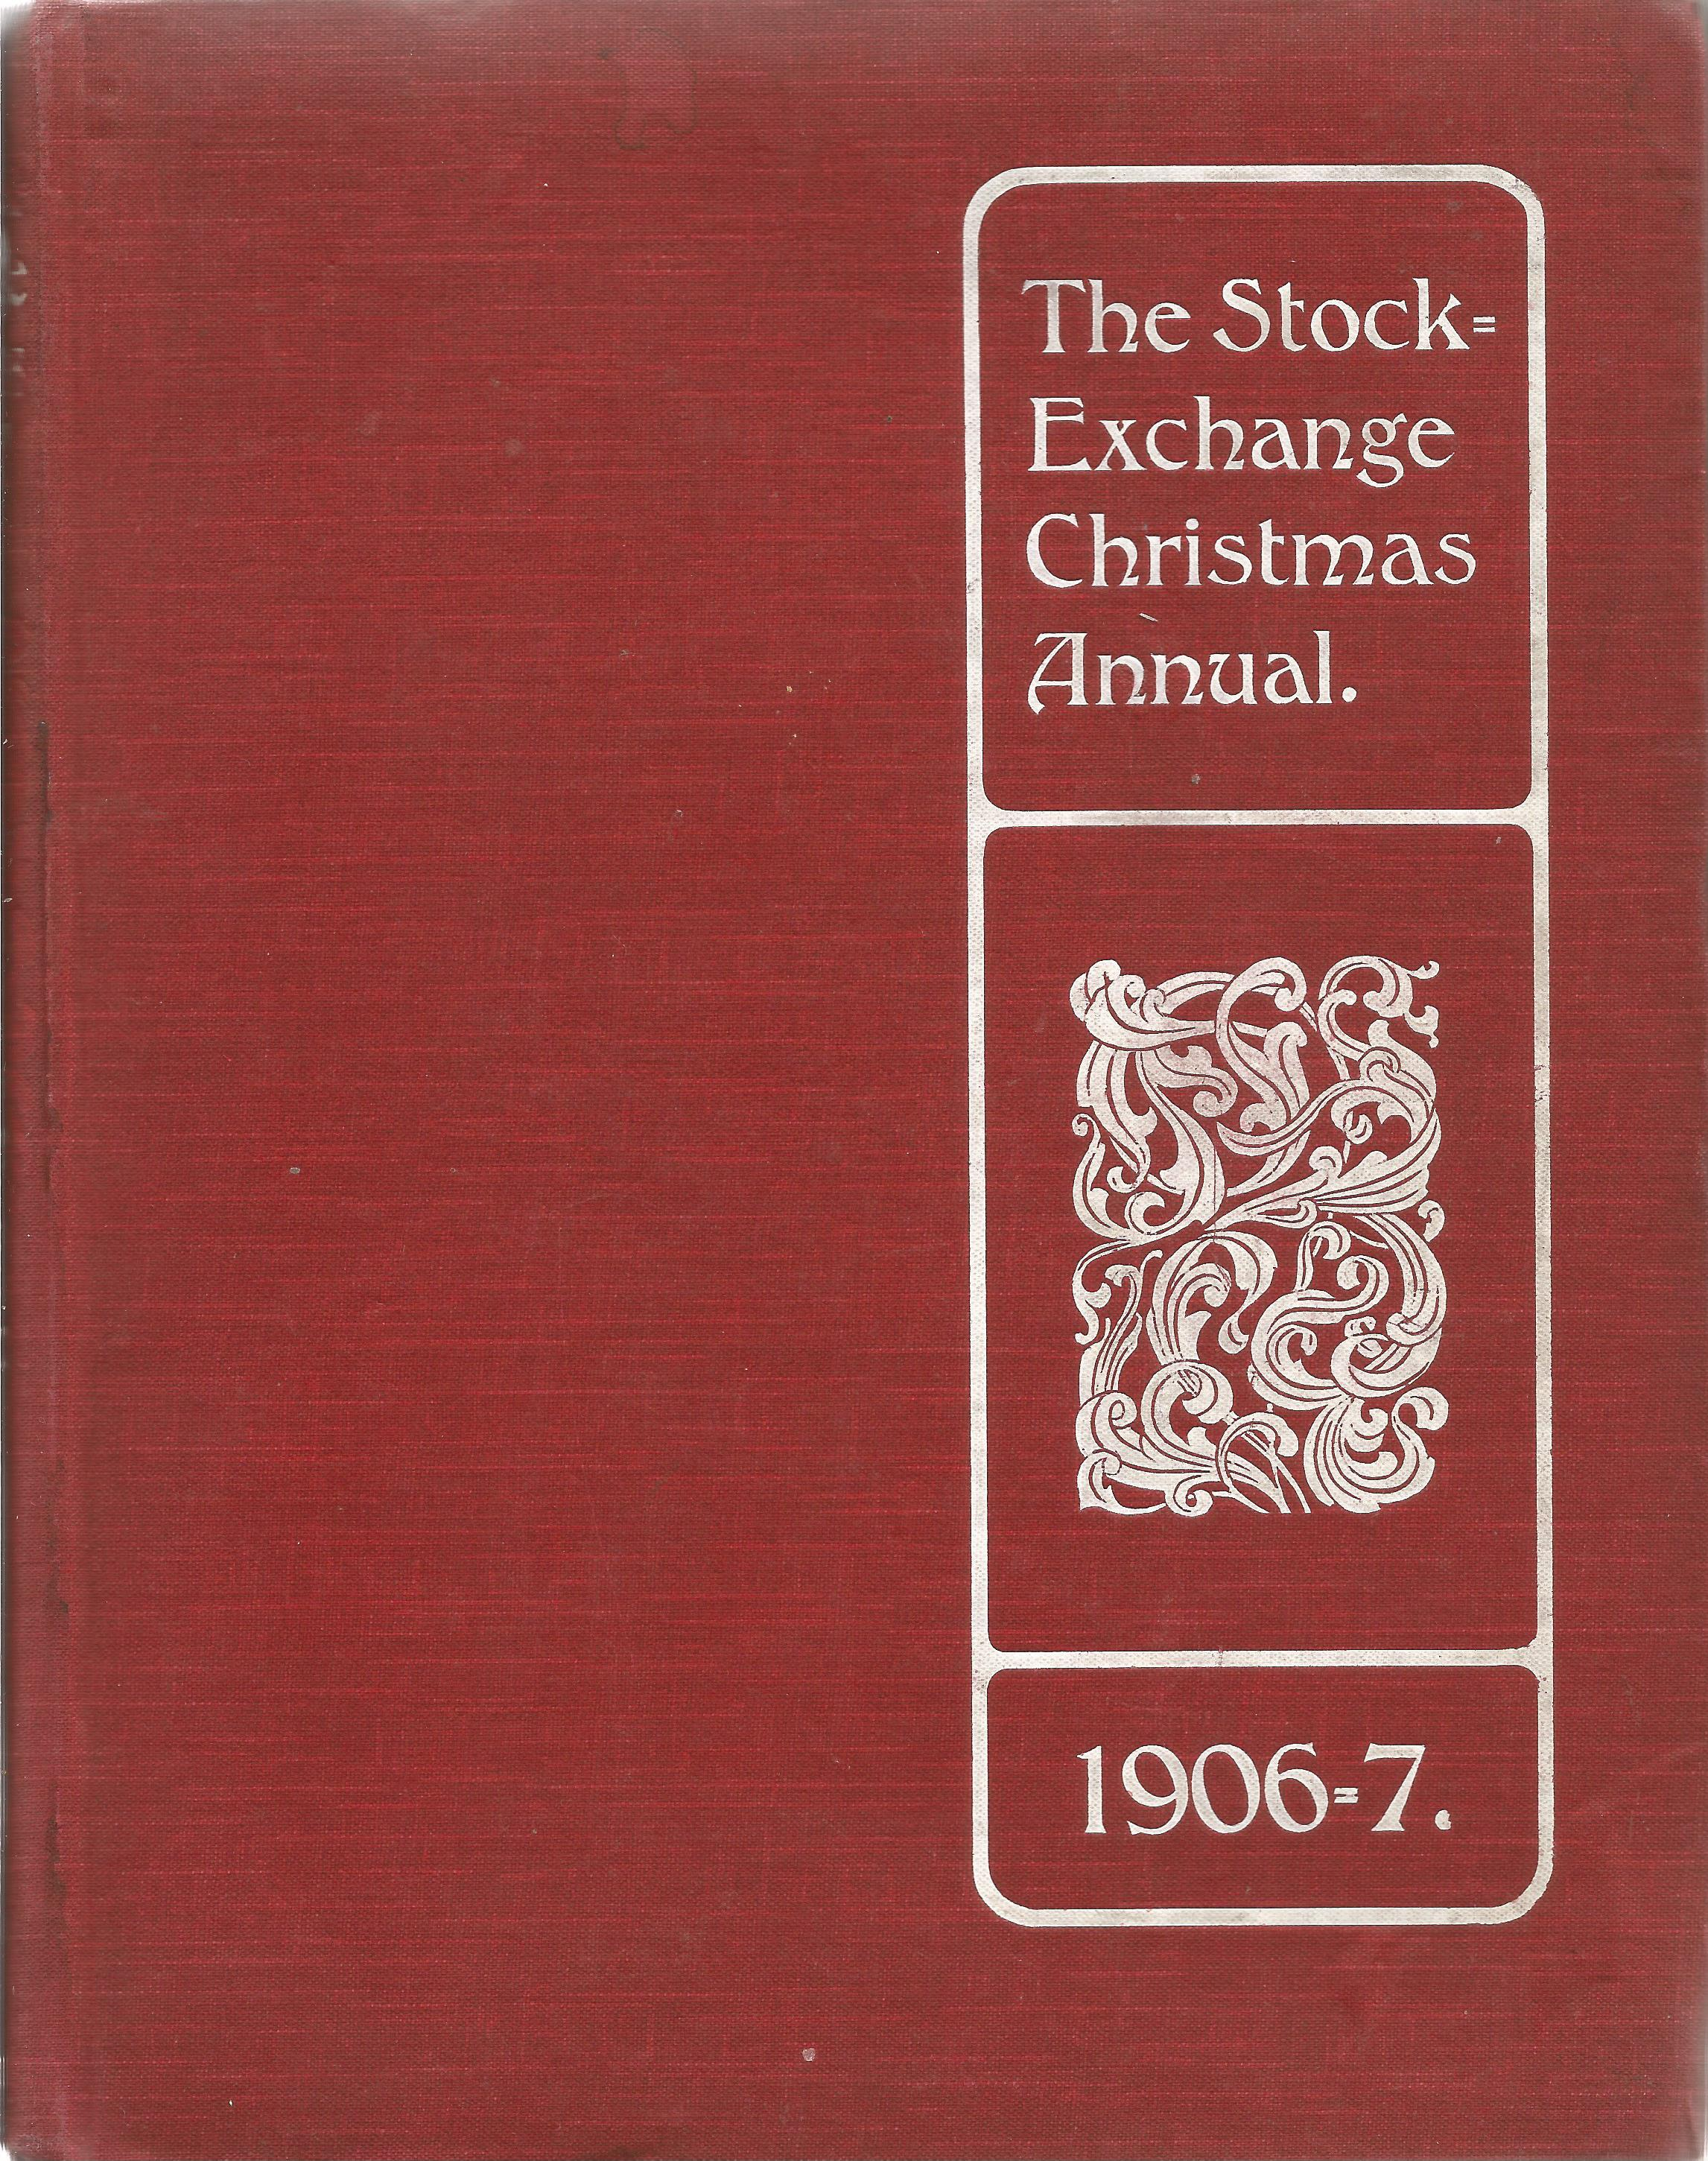 Stock Exchange Christmas Annual 1906/7 by Morgan, W.A, Hardback book with long hand written note